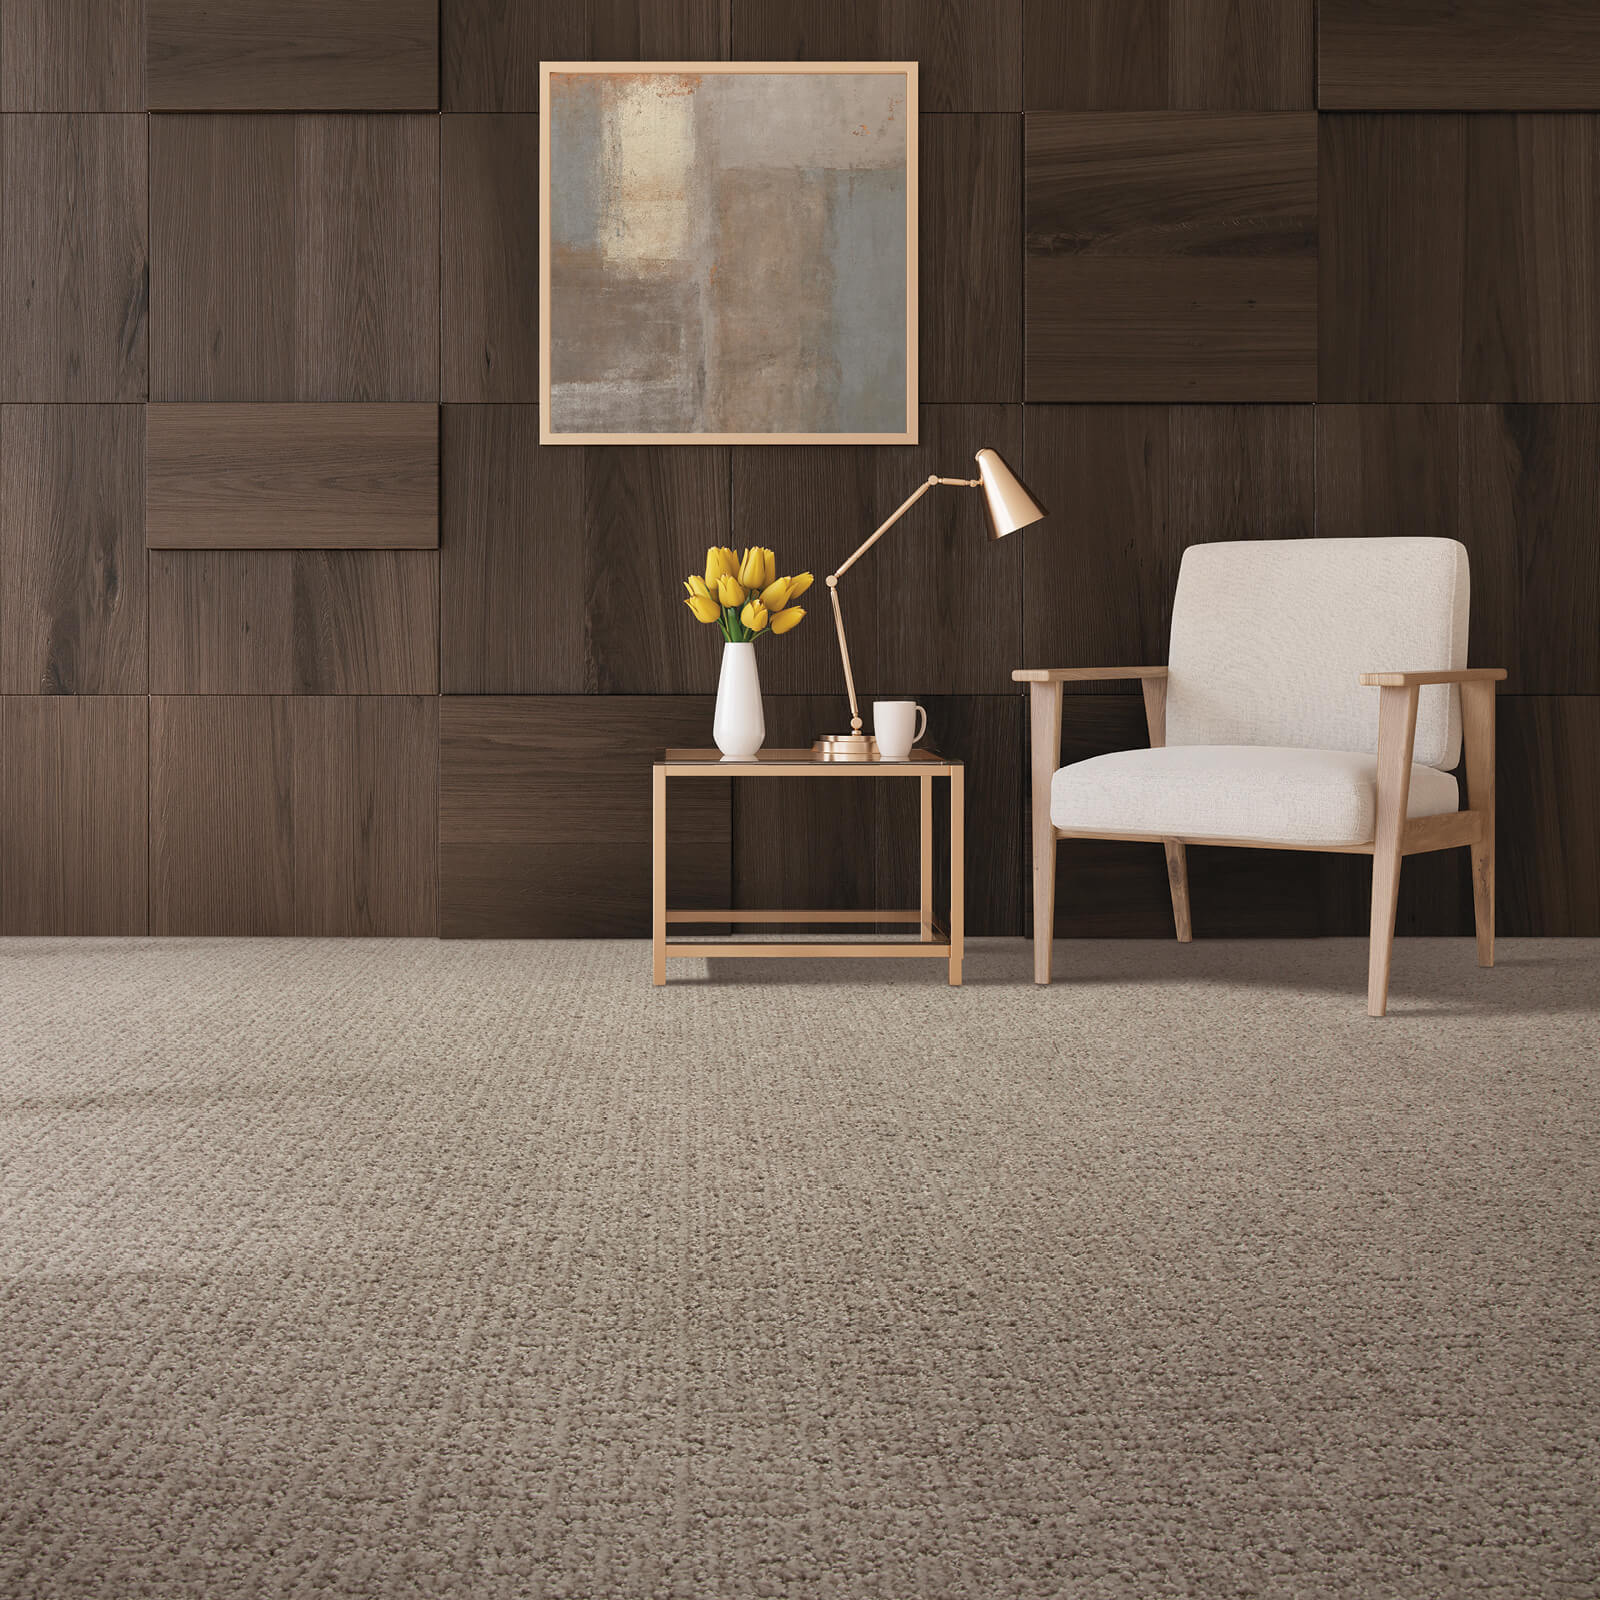 Stylish effect to living room | Great Floors